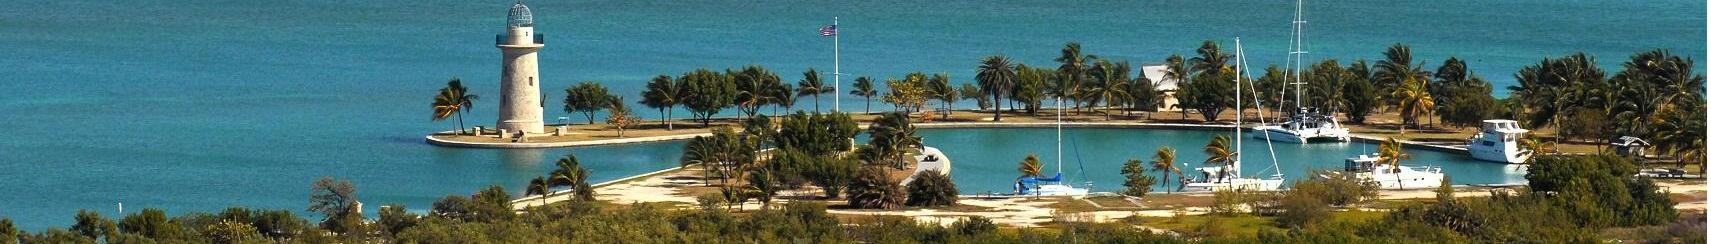 Biscayne National Park  Travel guide at Wikivoyage